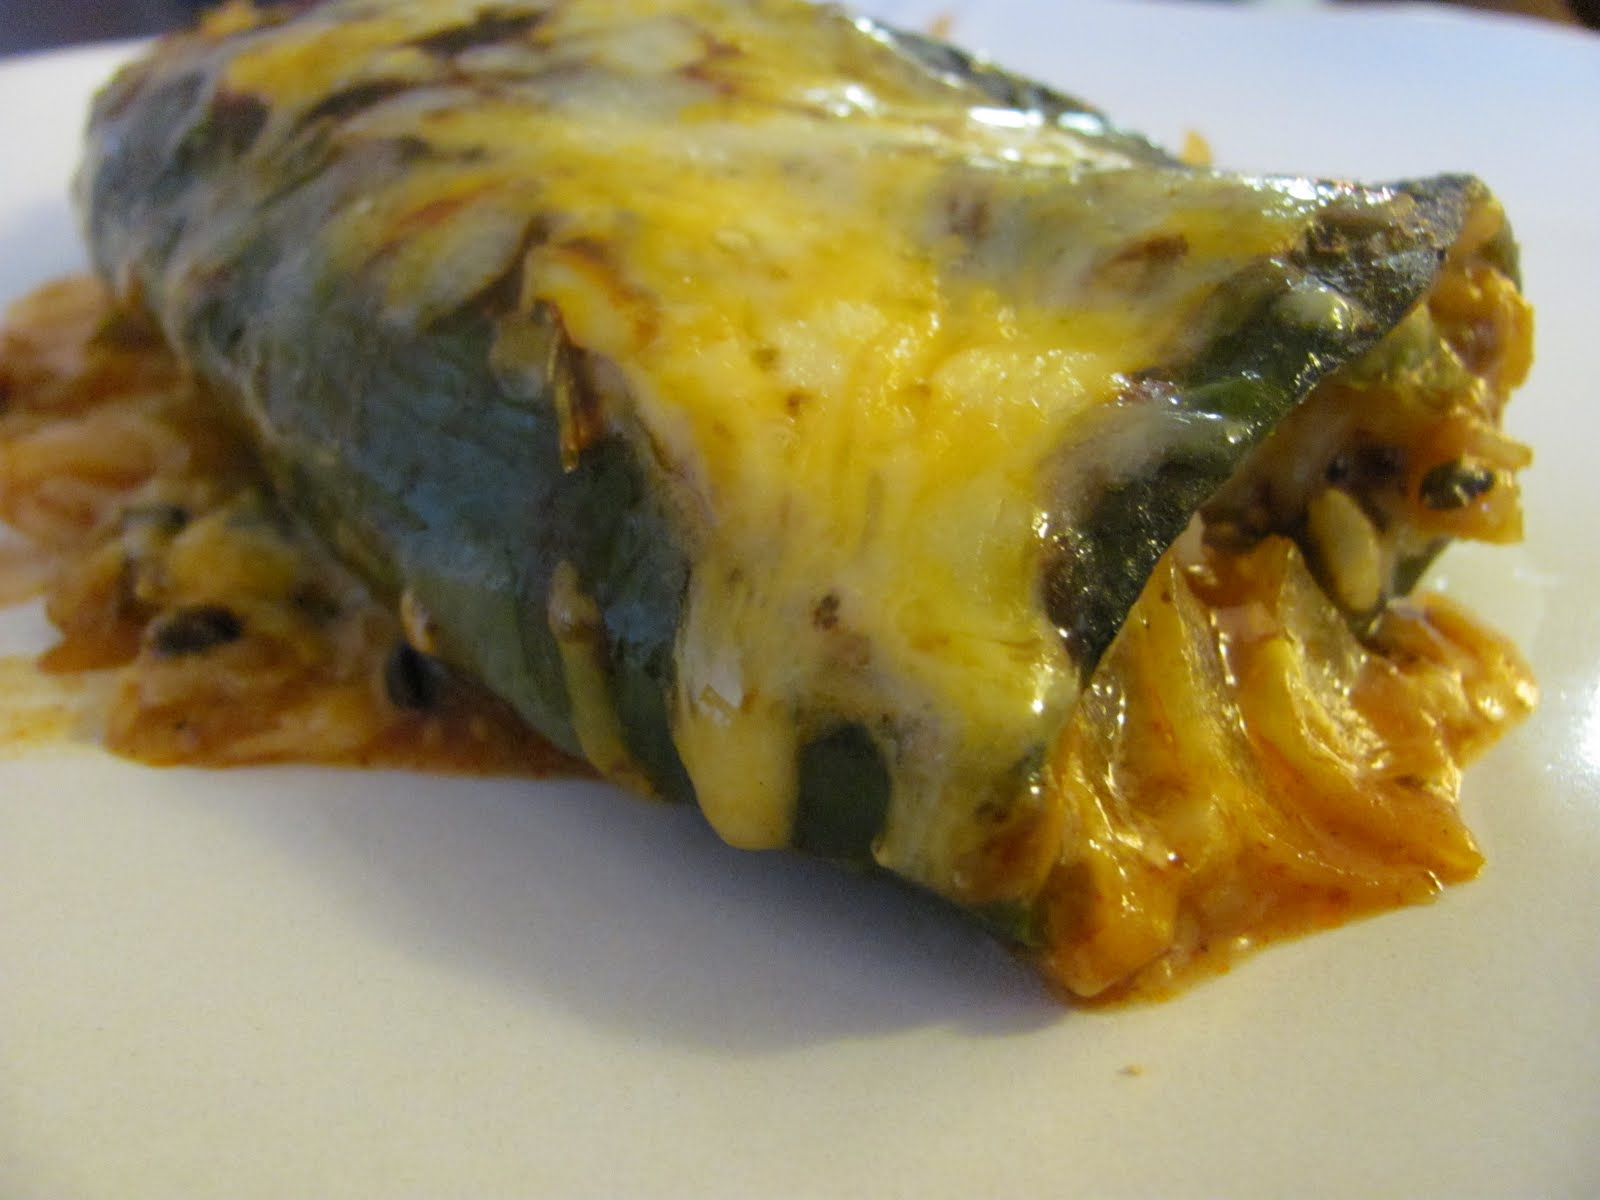 Baked Chile Rellenos With Corn And Crema Recipes — Dishmaps